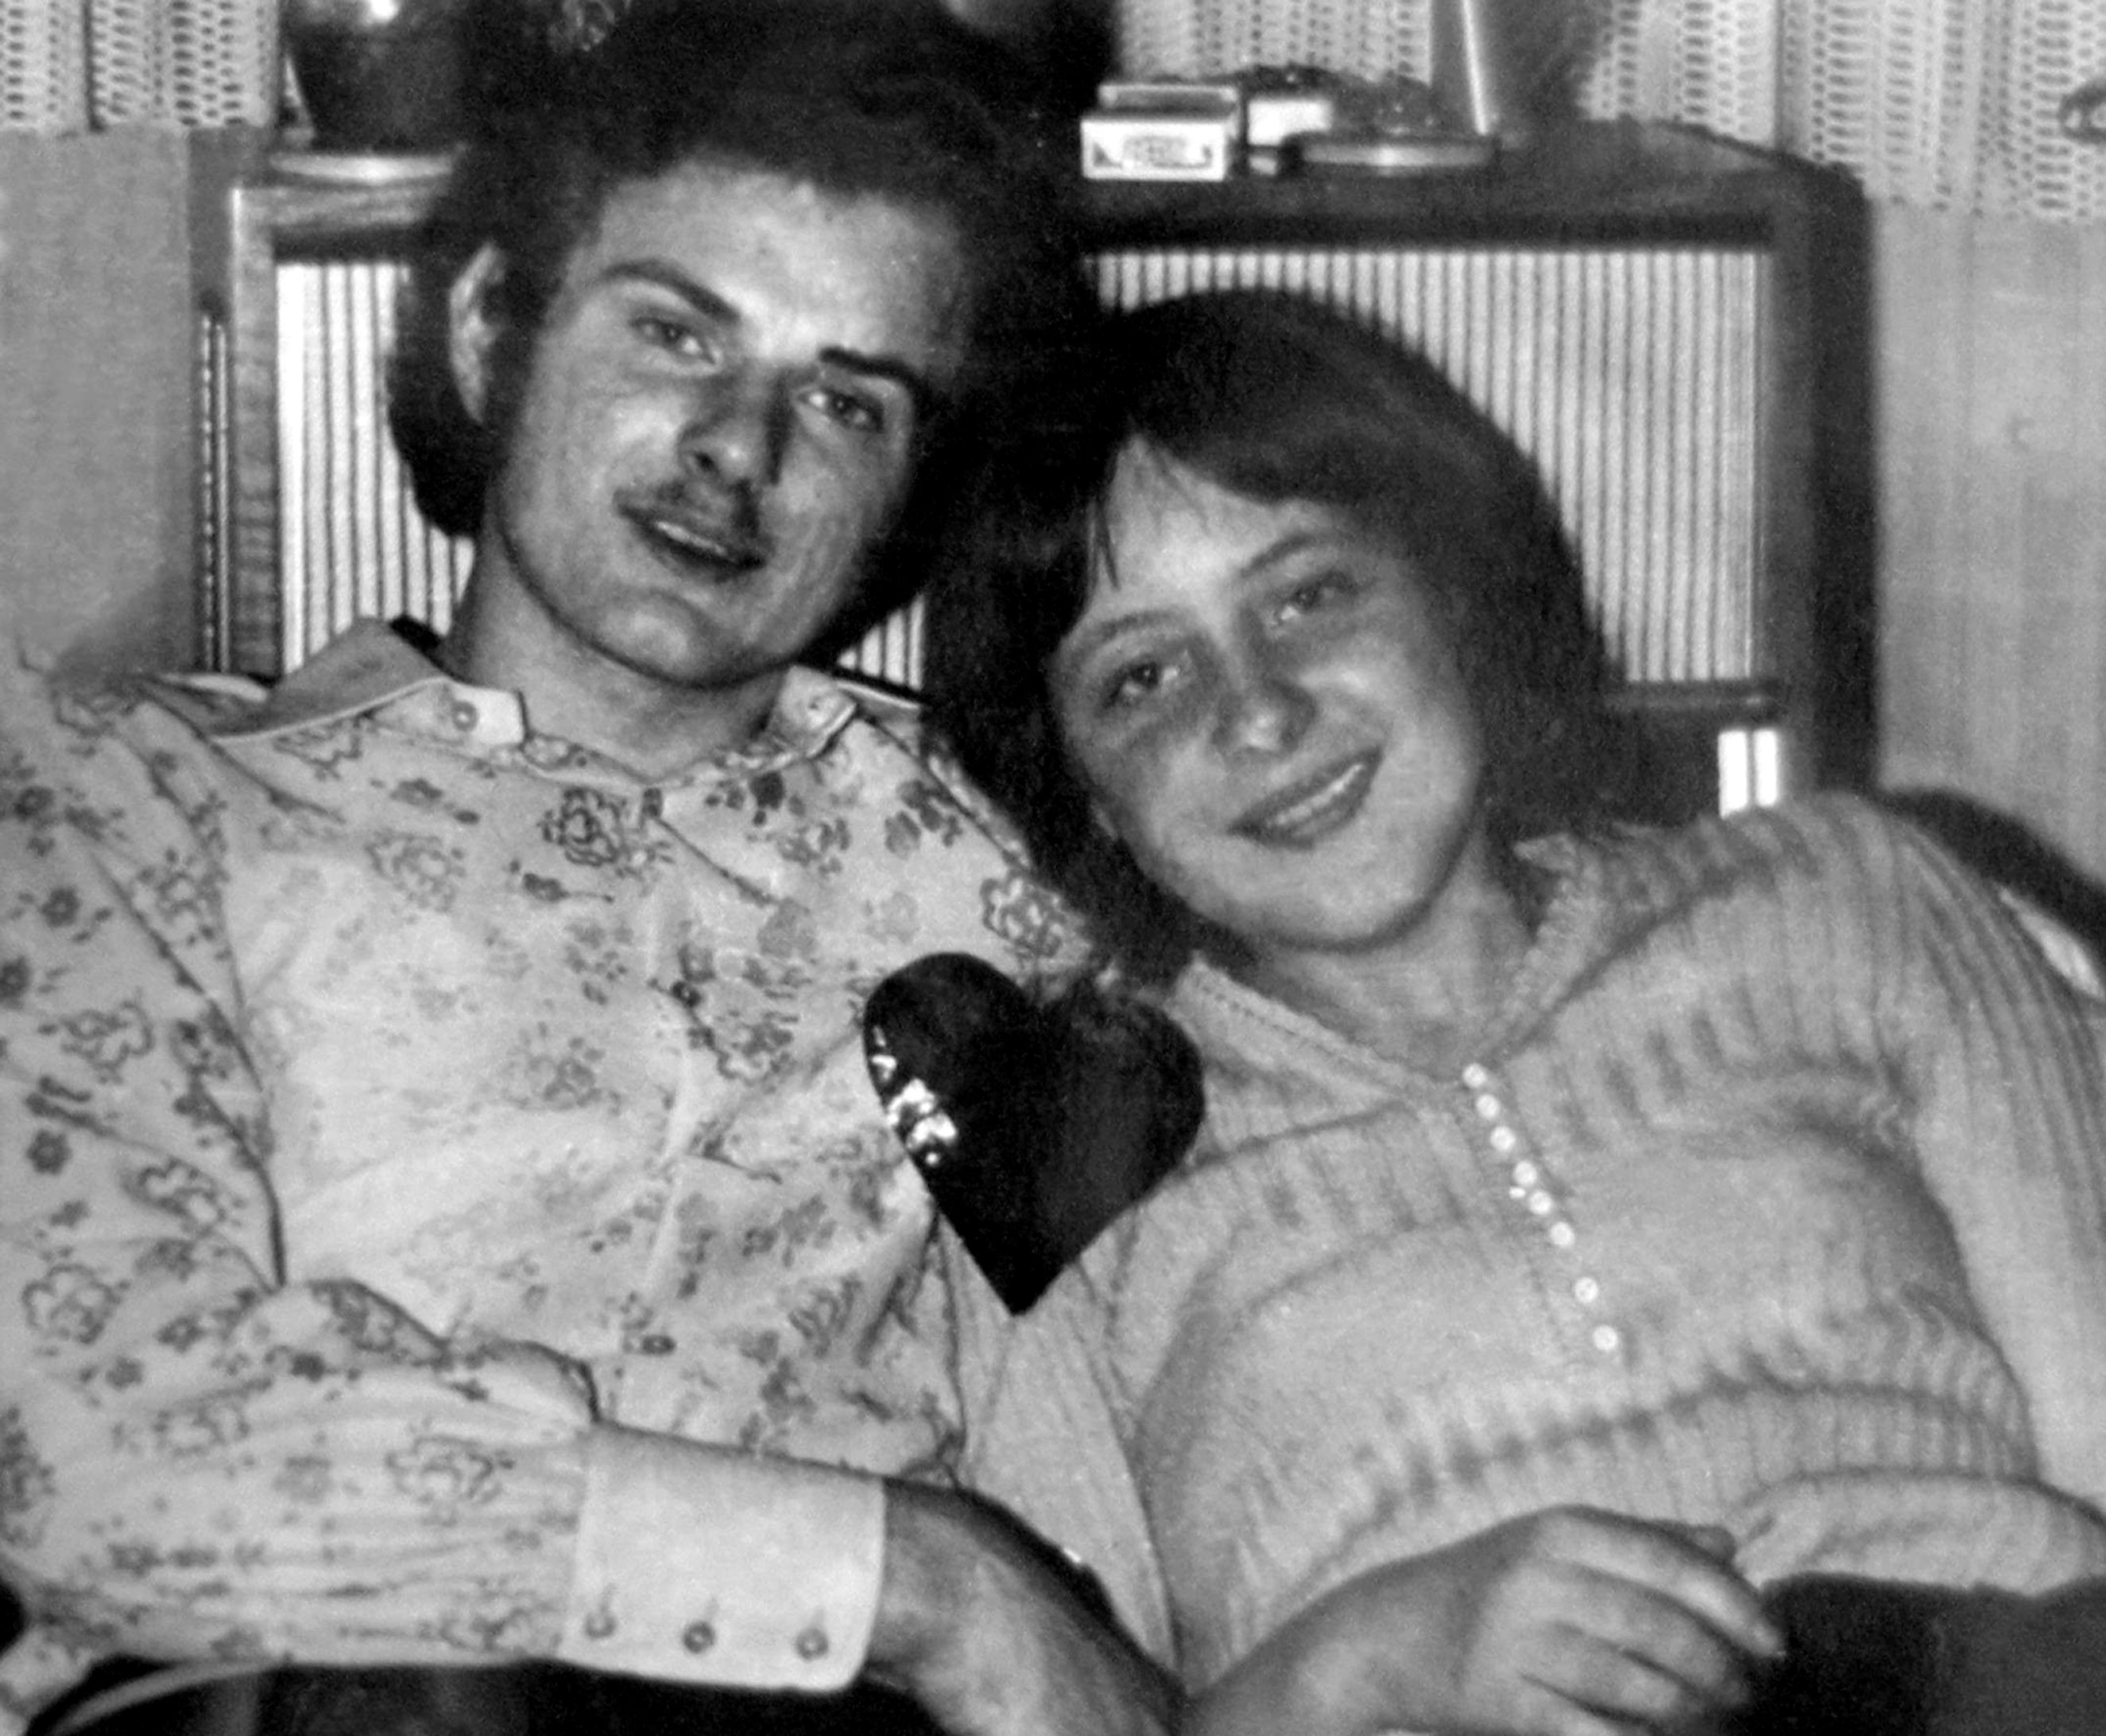 Angela Kasner with a friend at a New Year's Eve party in Berlin in 1972.